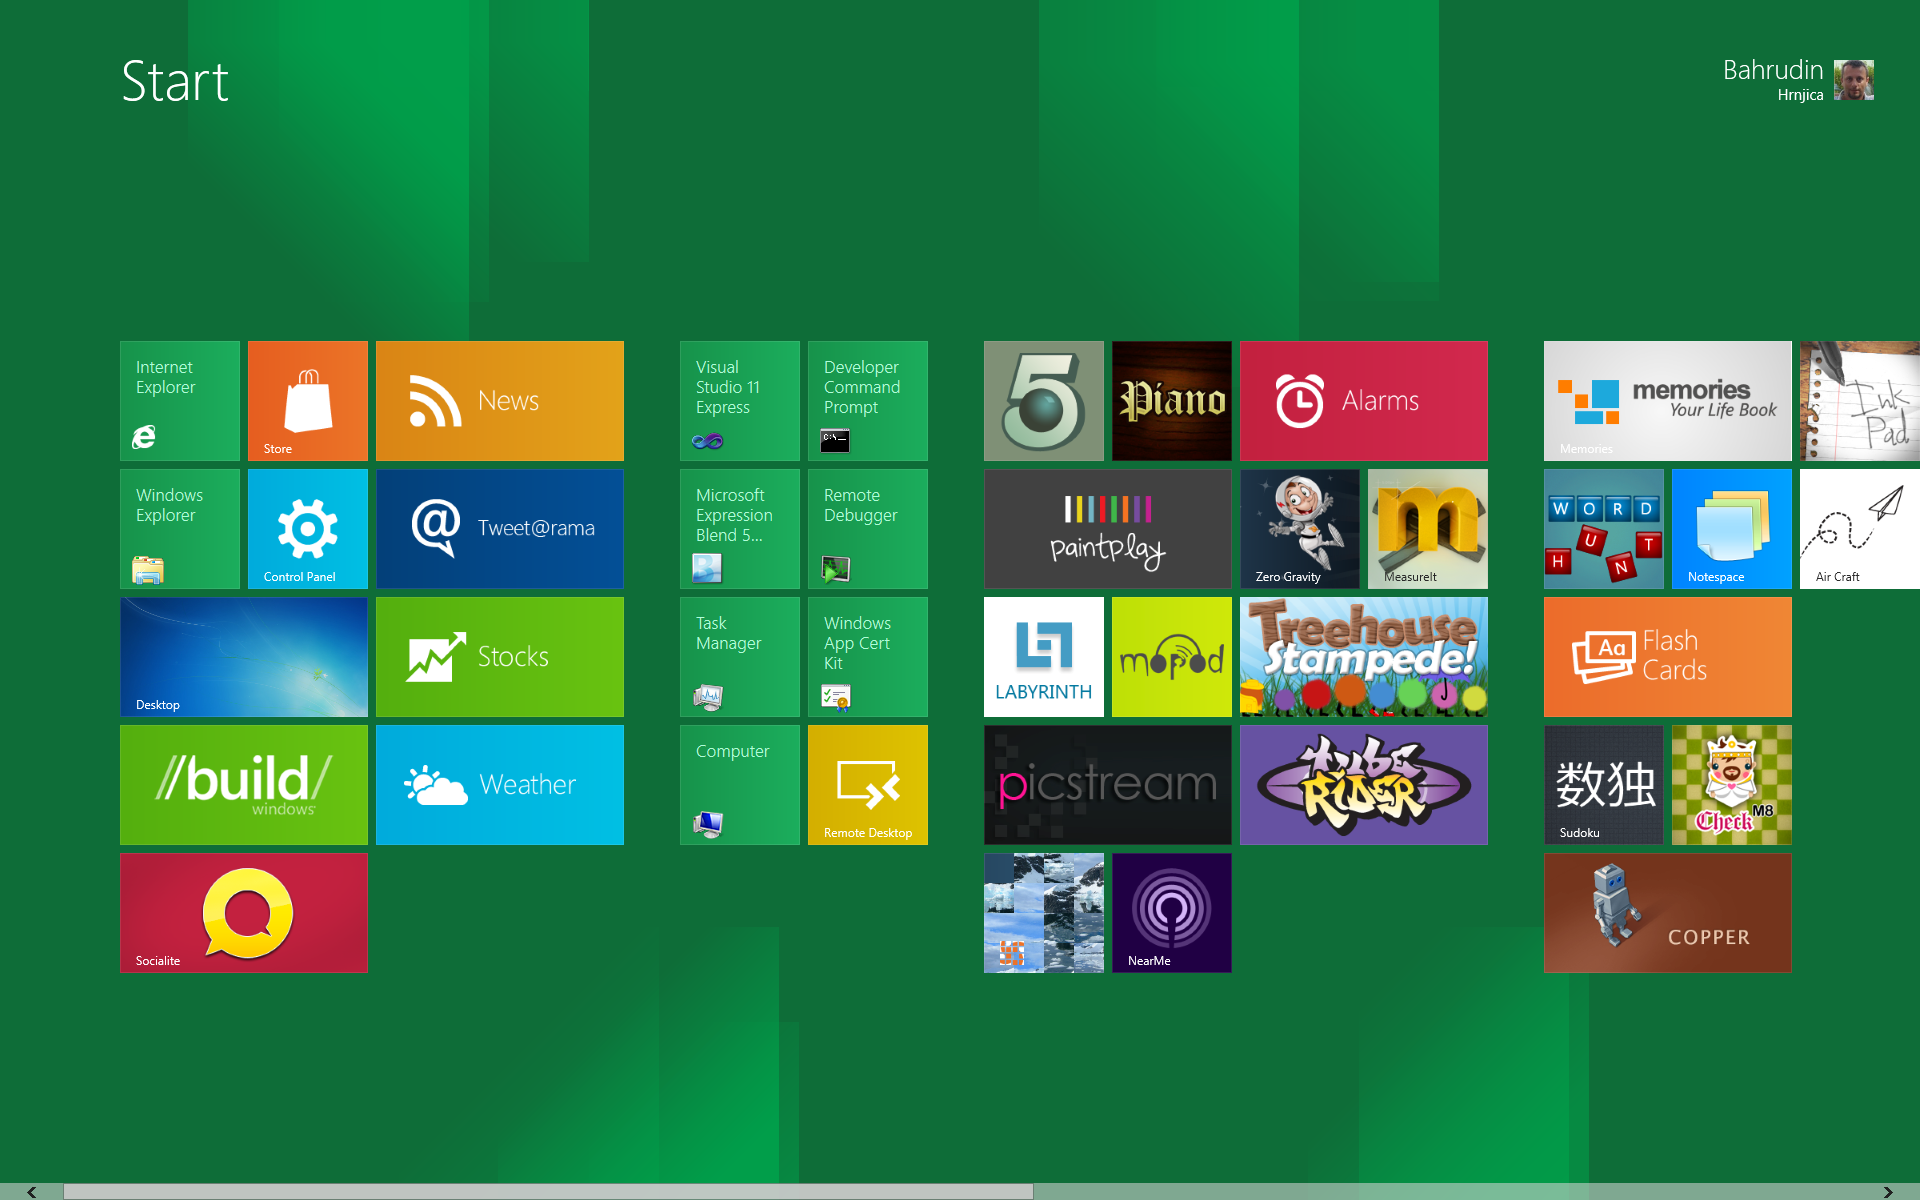 Windows 8 metro tips and tricks bahrudin hrnjica blog for Window design app